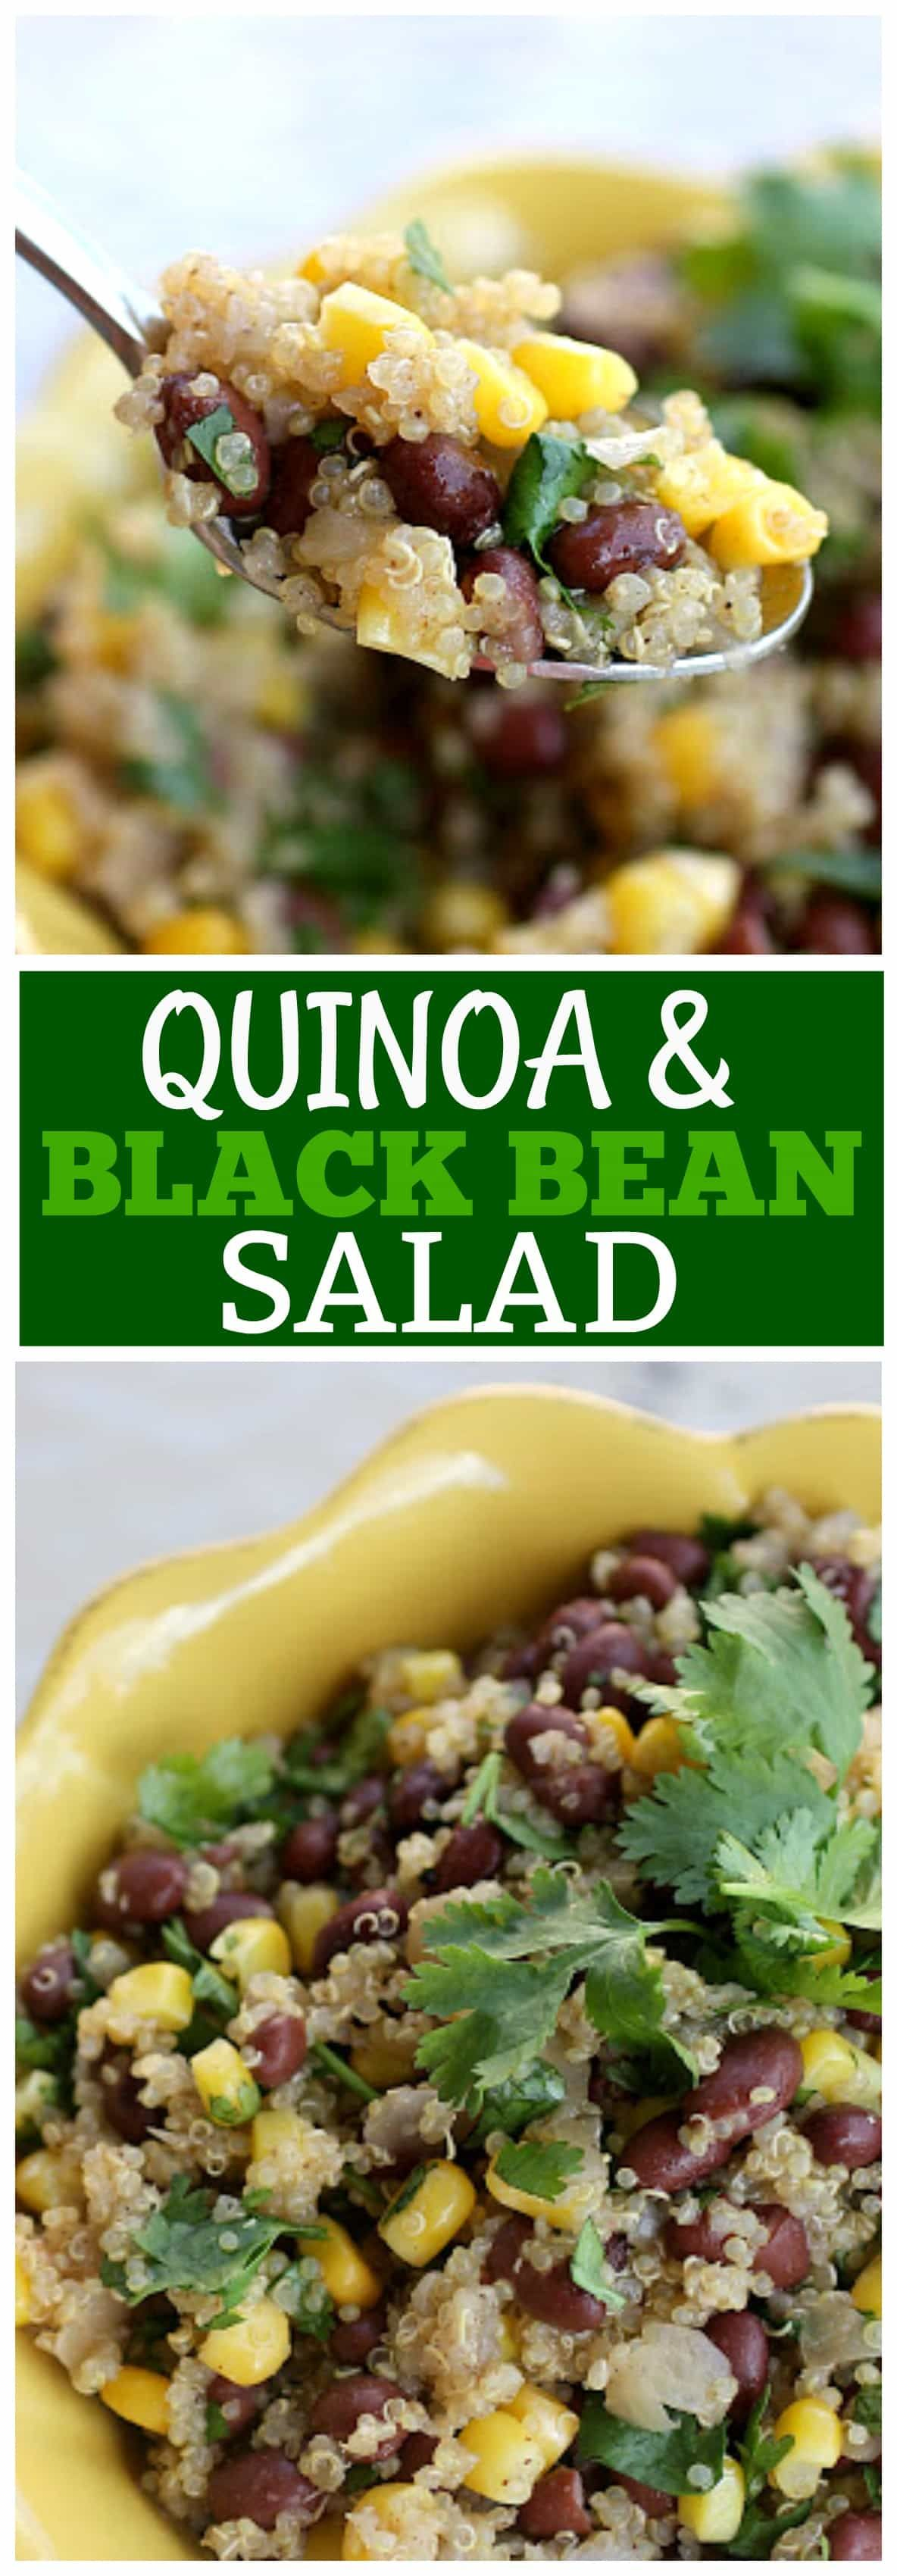 This Quinoa And Black Bean Salad Is A Vegan Mexican Side Dish Packed With Corn And Black Beans Diy Food Recipes Diy Easy Recipes Vegan Mexican Recipes